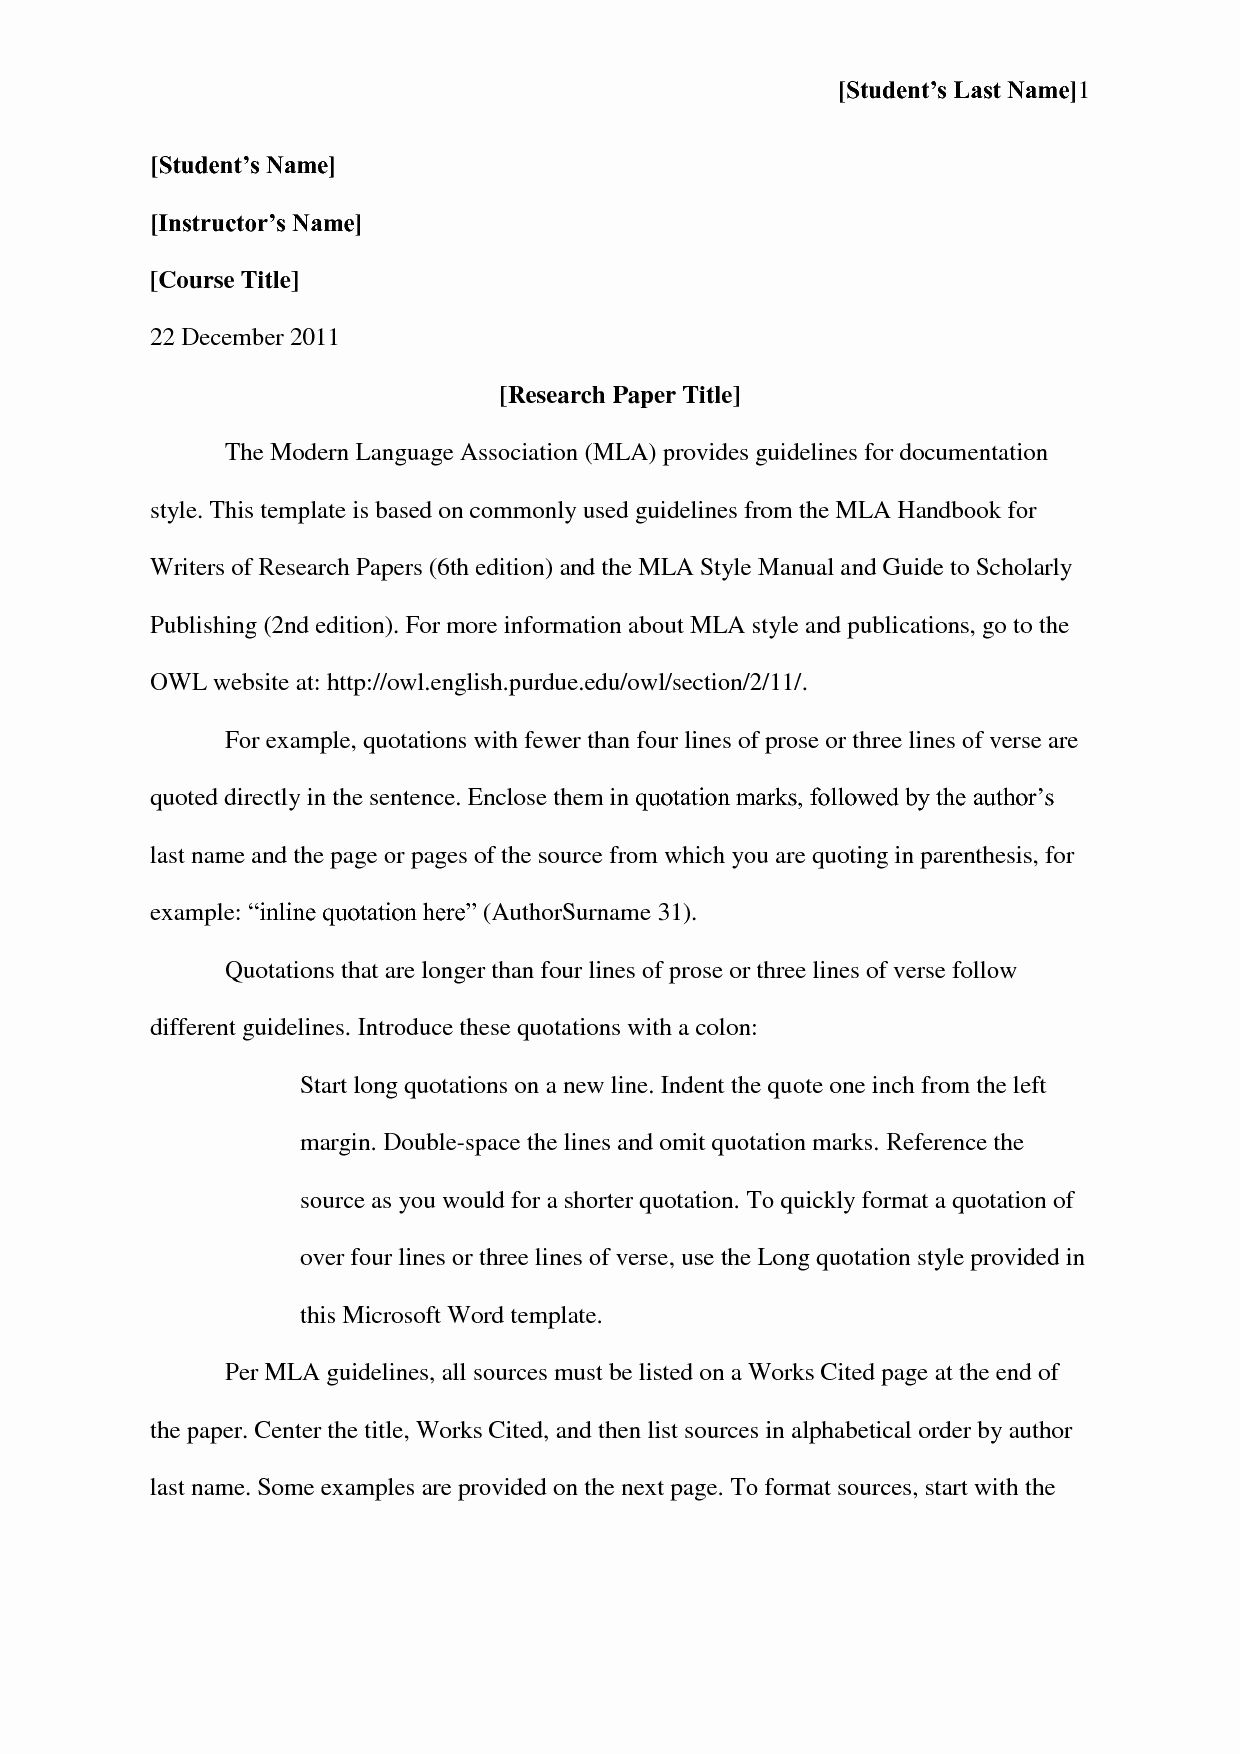 012 Mla Title Page Template Awesome Format Works Cited Scarlet Letter Best Of Apa Style Essay Research Impressive Generator Example Reference Interview Full